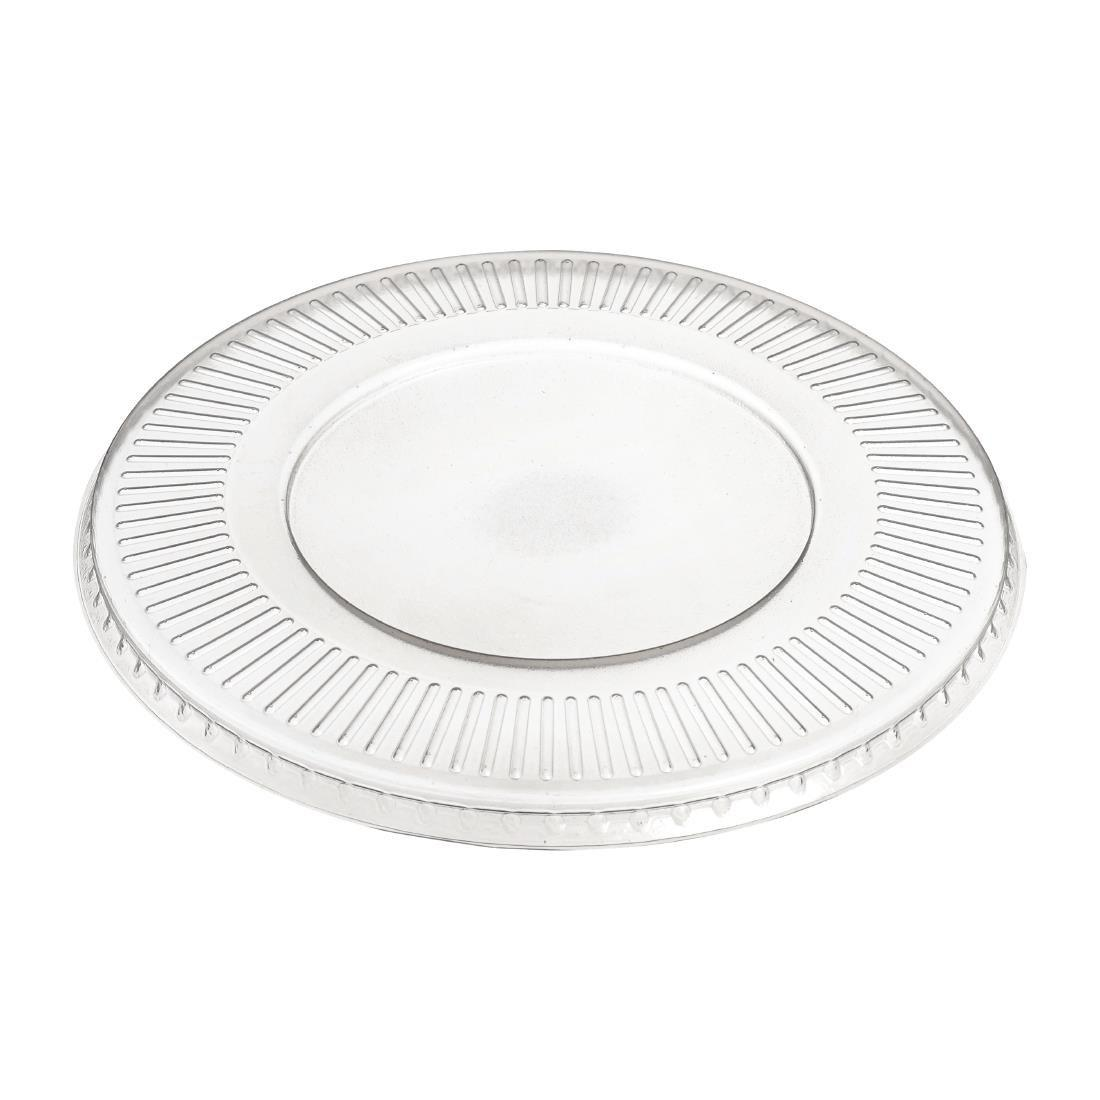 FD932 - Solia Recyclable Polypropylene Mix Bagasse Bowl Lids 1500ml  - Pack of 50 - FD932